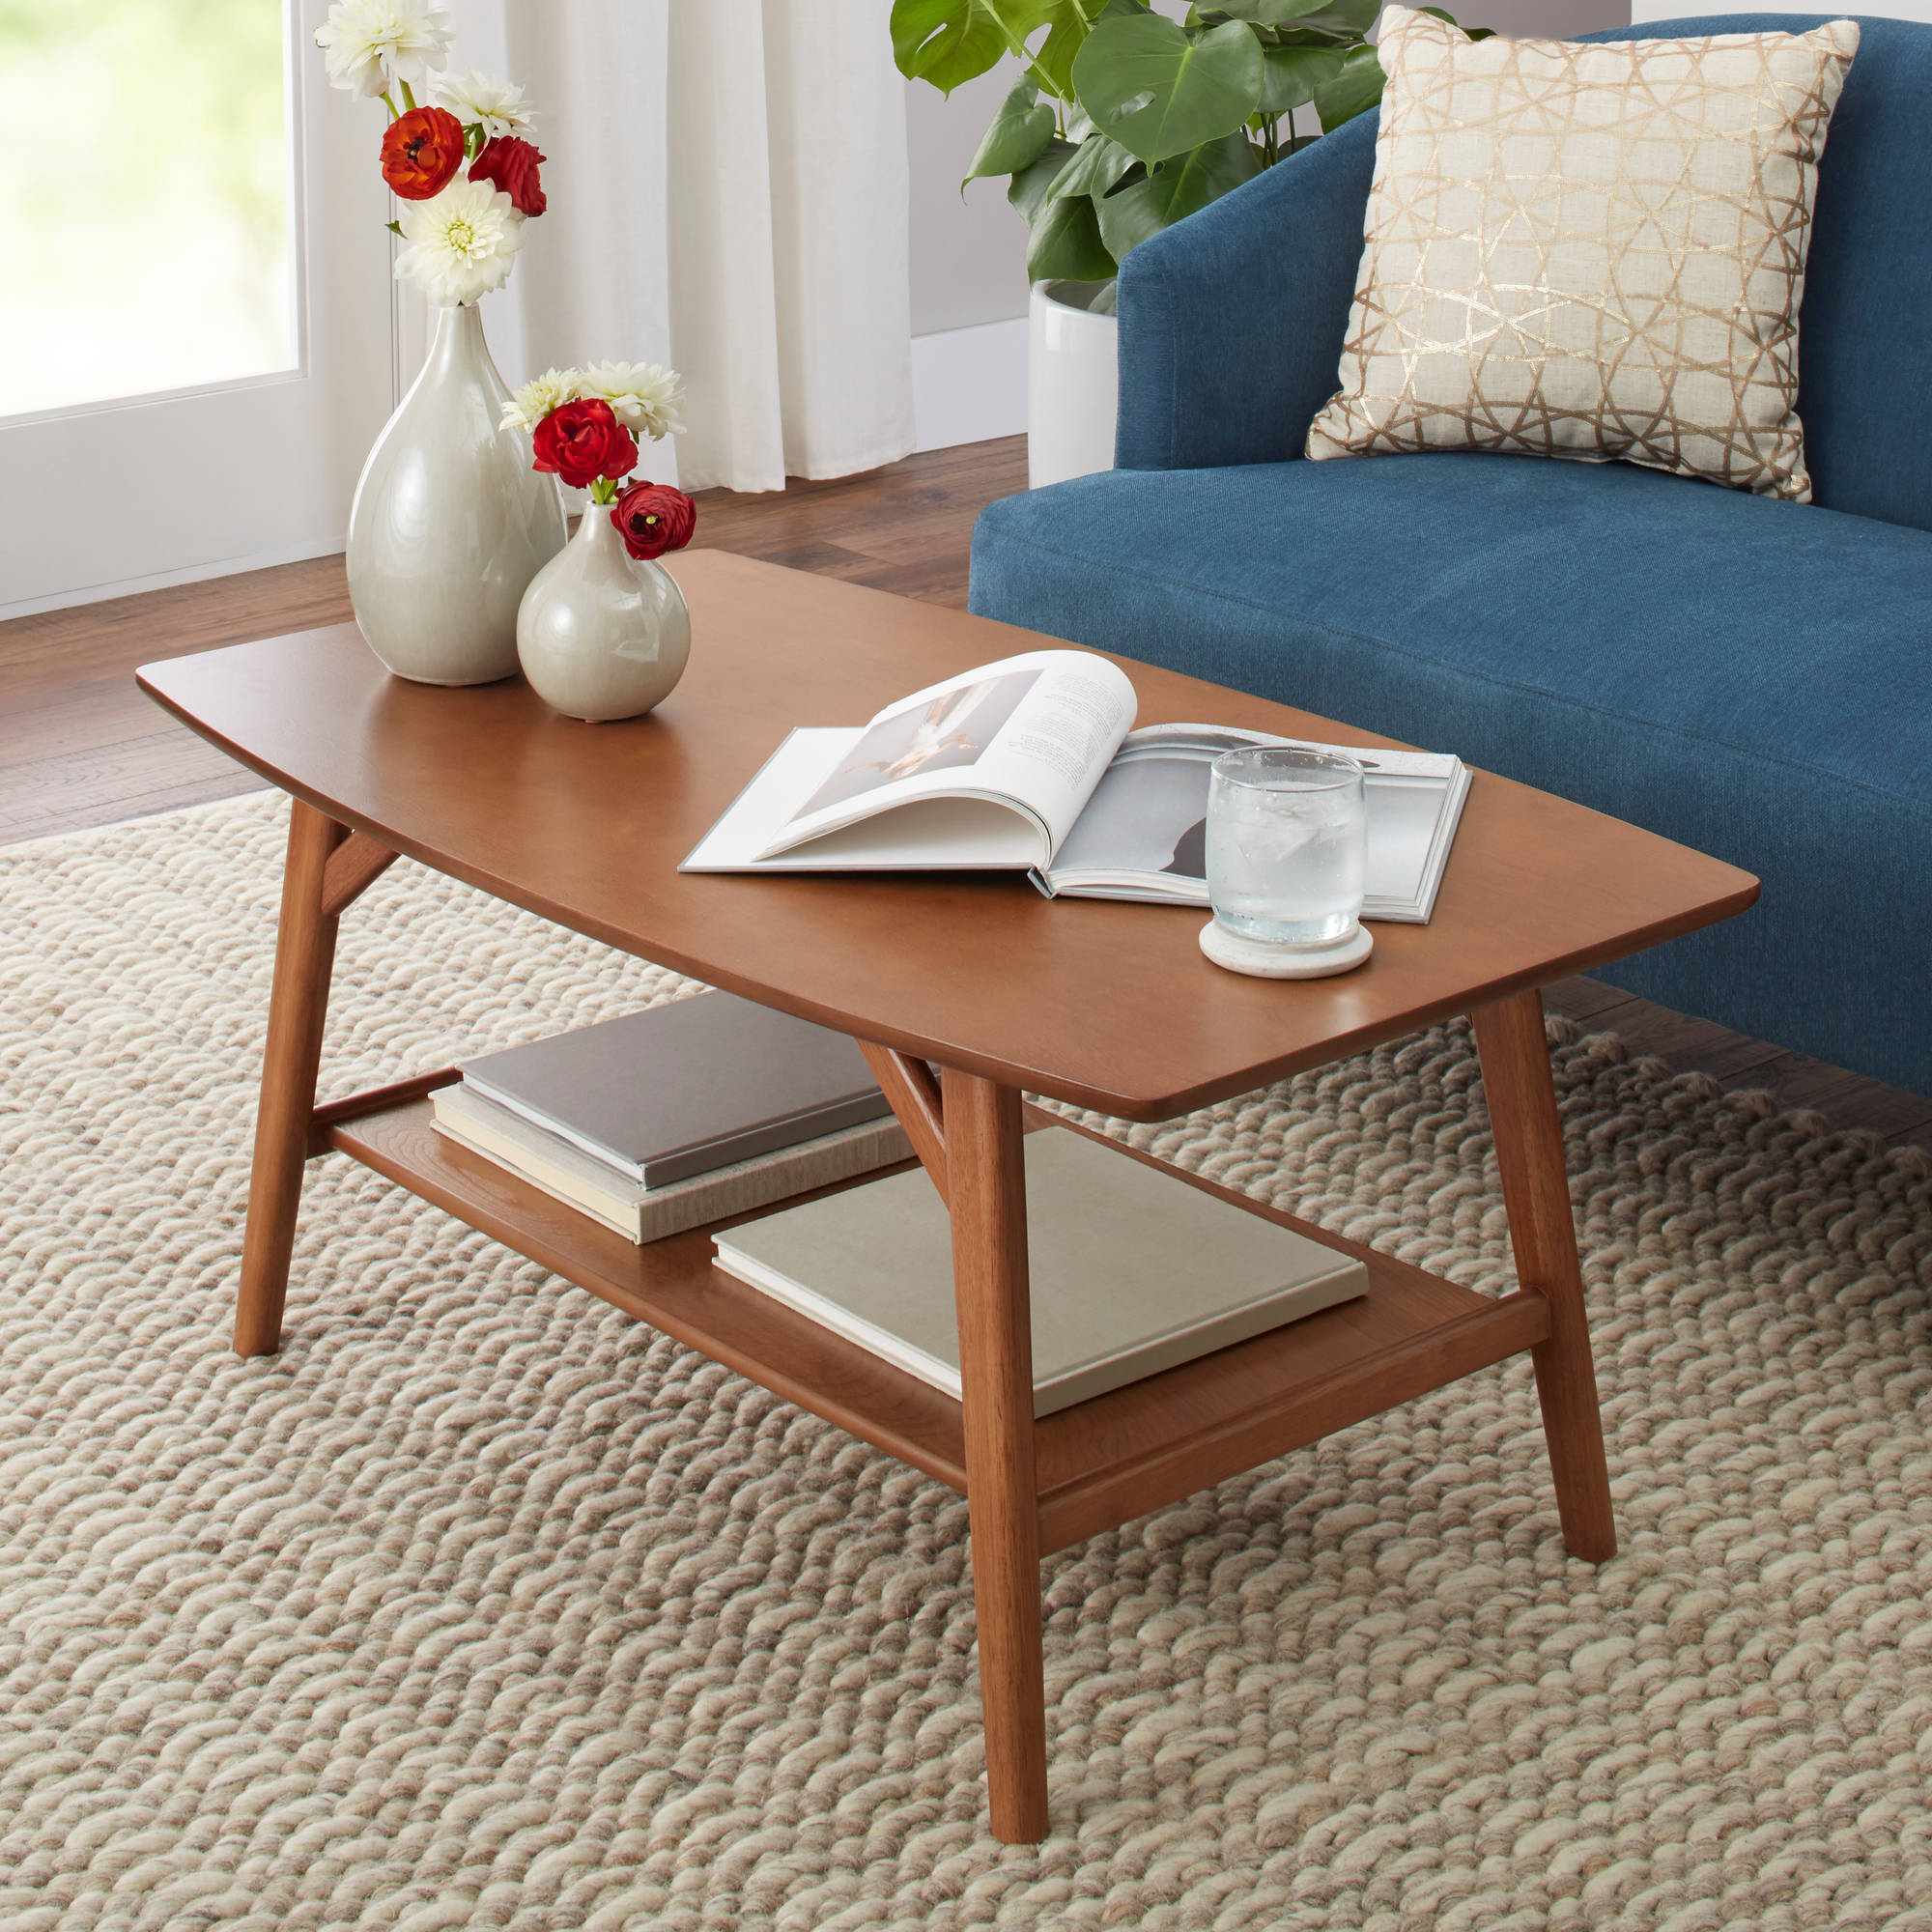 probably terrific cool solid wood coffee and end table sets better homes gardens reed mid century modern pecan glass side living room high round accent single memory foam mattress